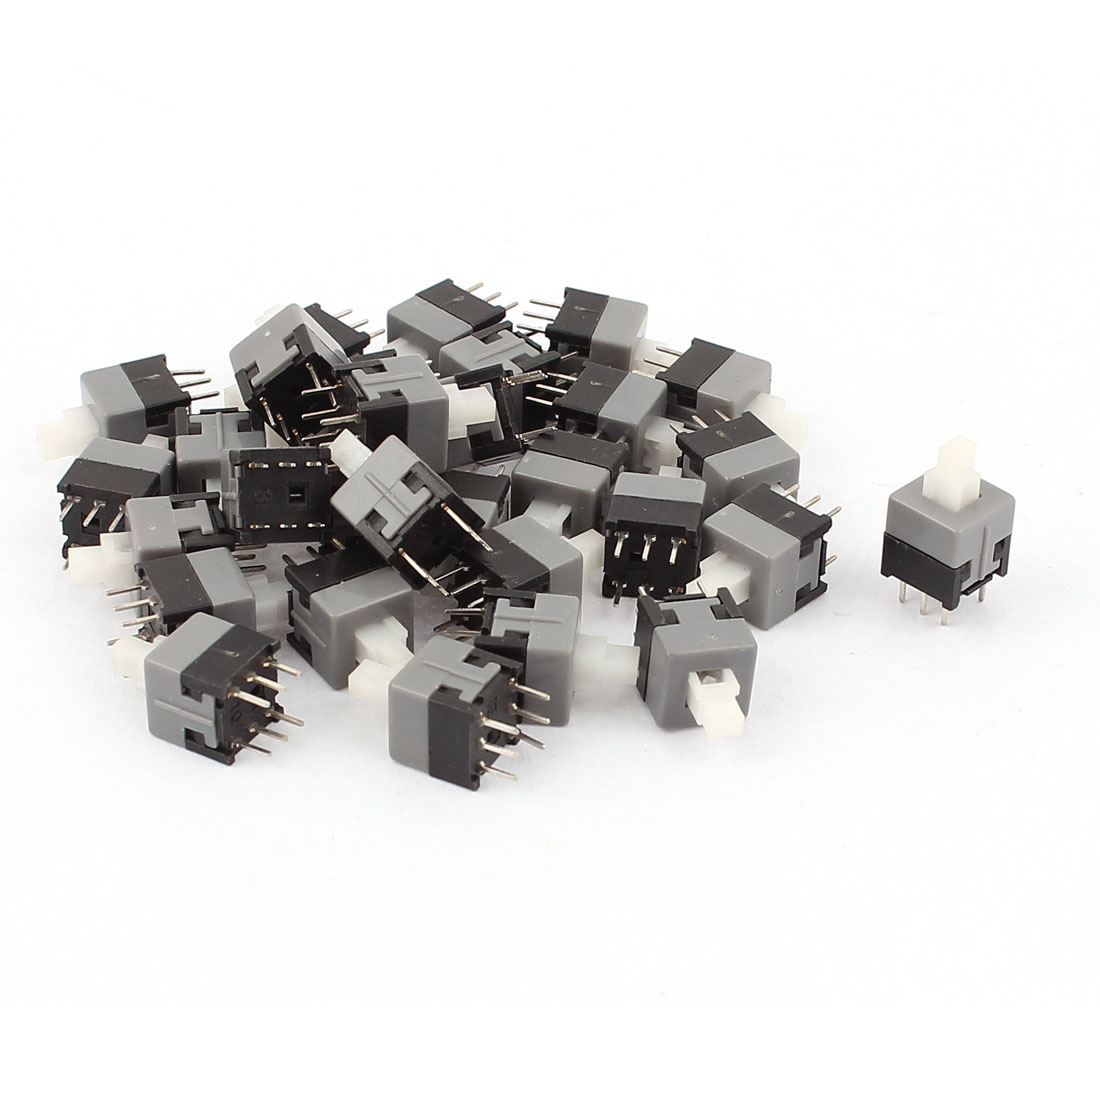 30 Pcs 6 Pin DPDT Latching Tact Tactile Micro Mini Push Button Switch